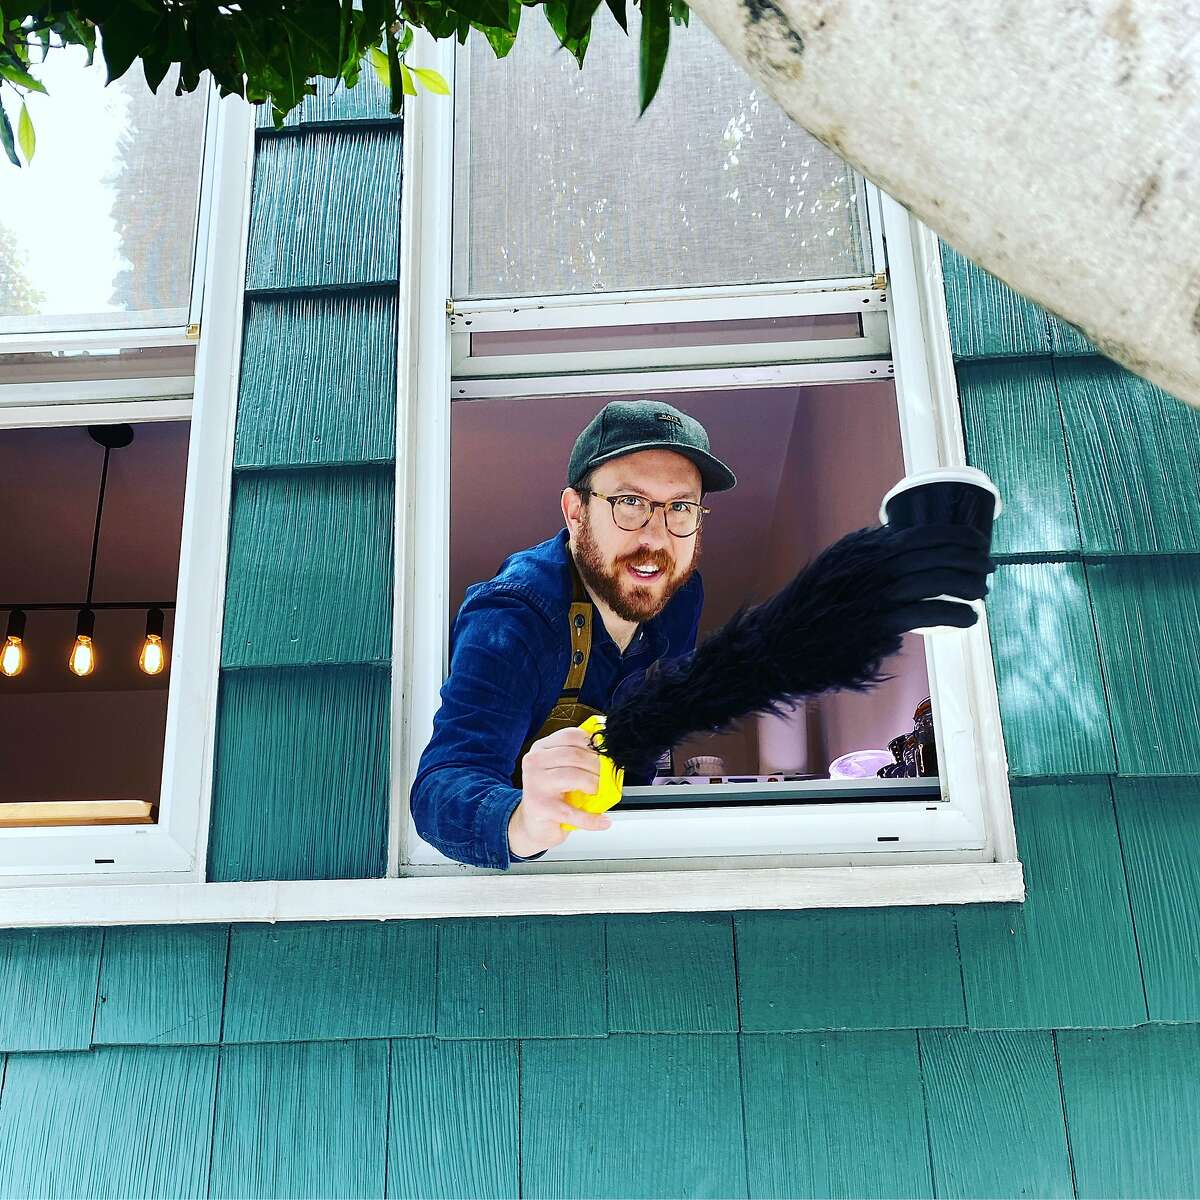 North Beach resident Ben Ramirez has been making and handing out cups of coffee through a sidewalk-level window of his flat. credit:Ben Ramirez